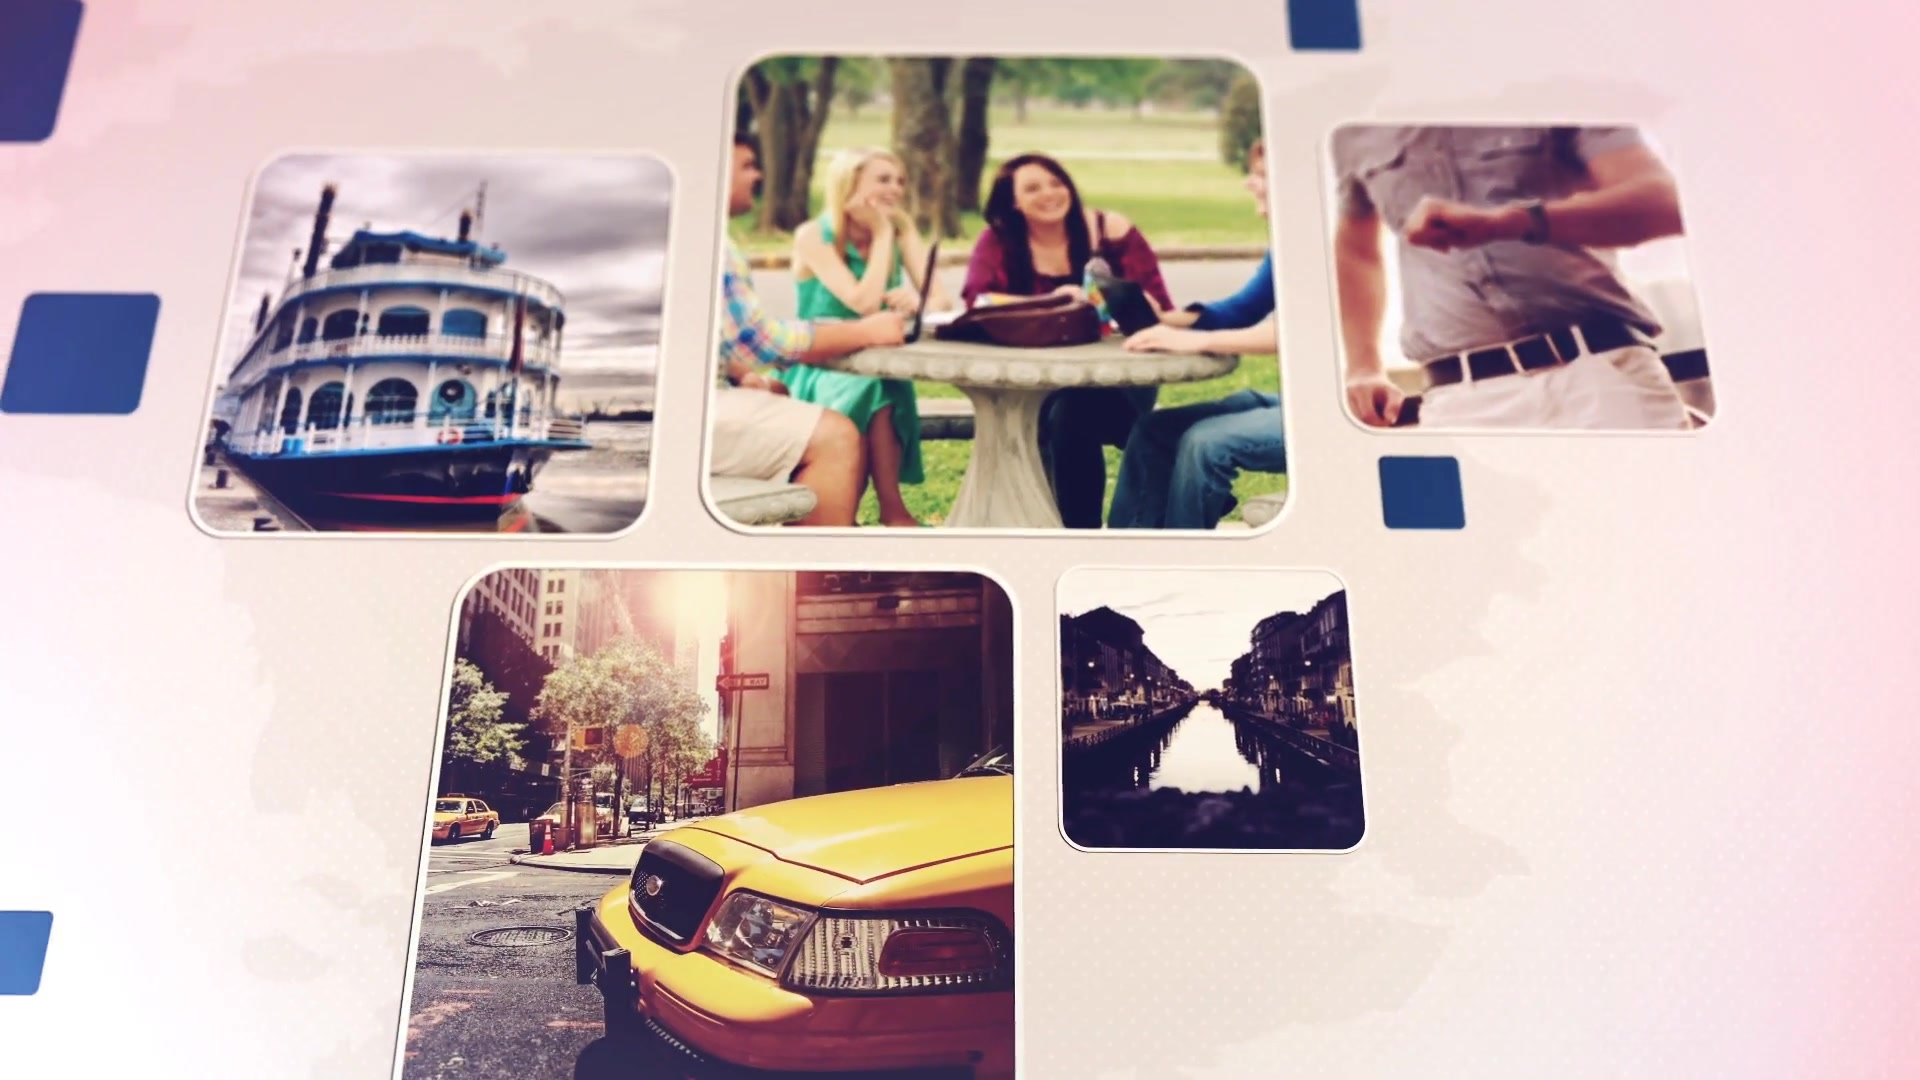 World Photos Slideshow - Download Videohive 13560398